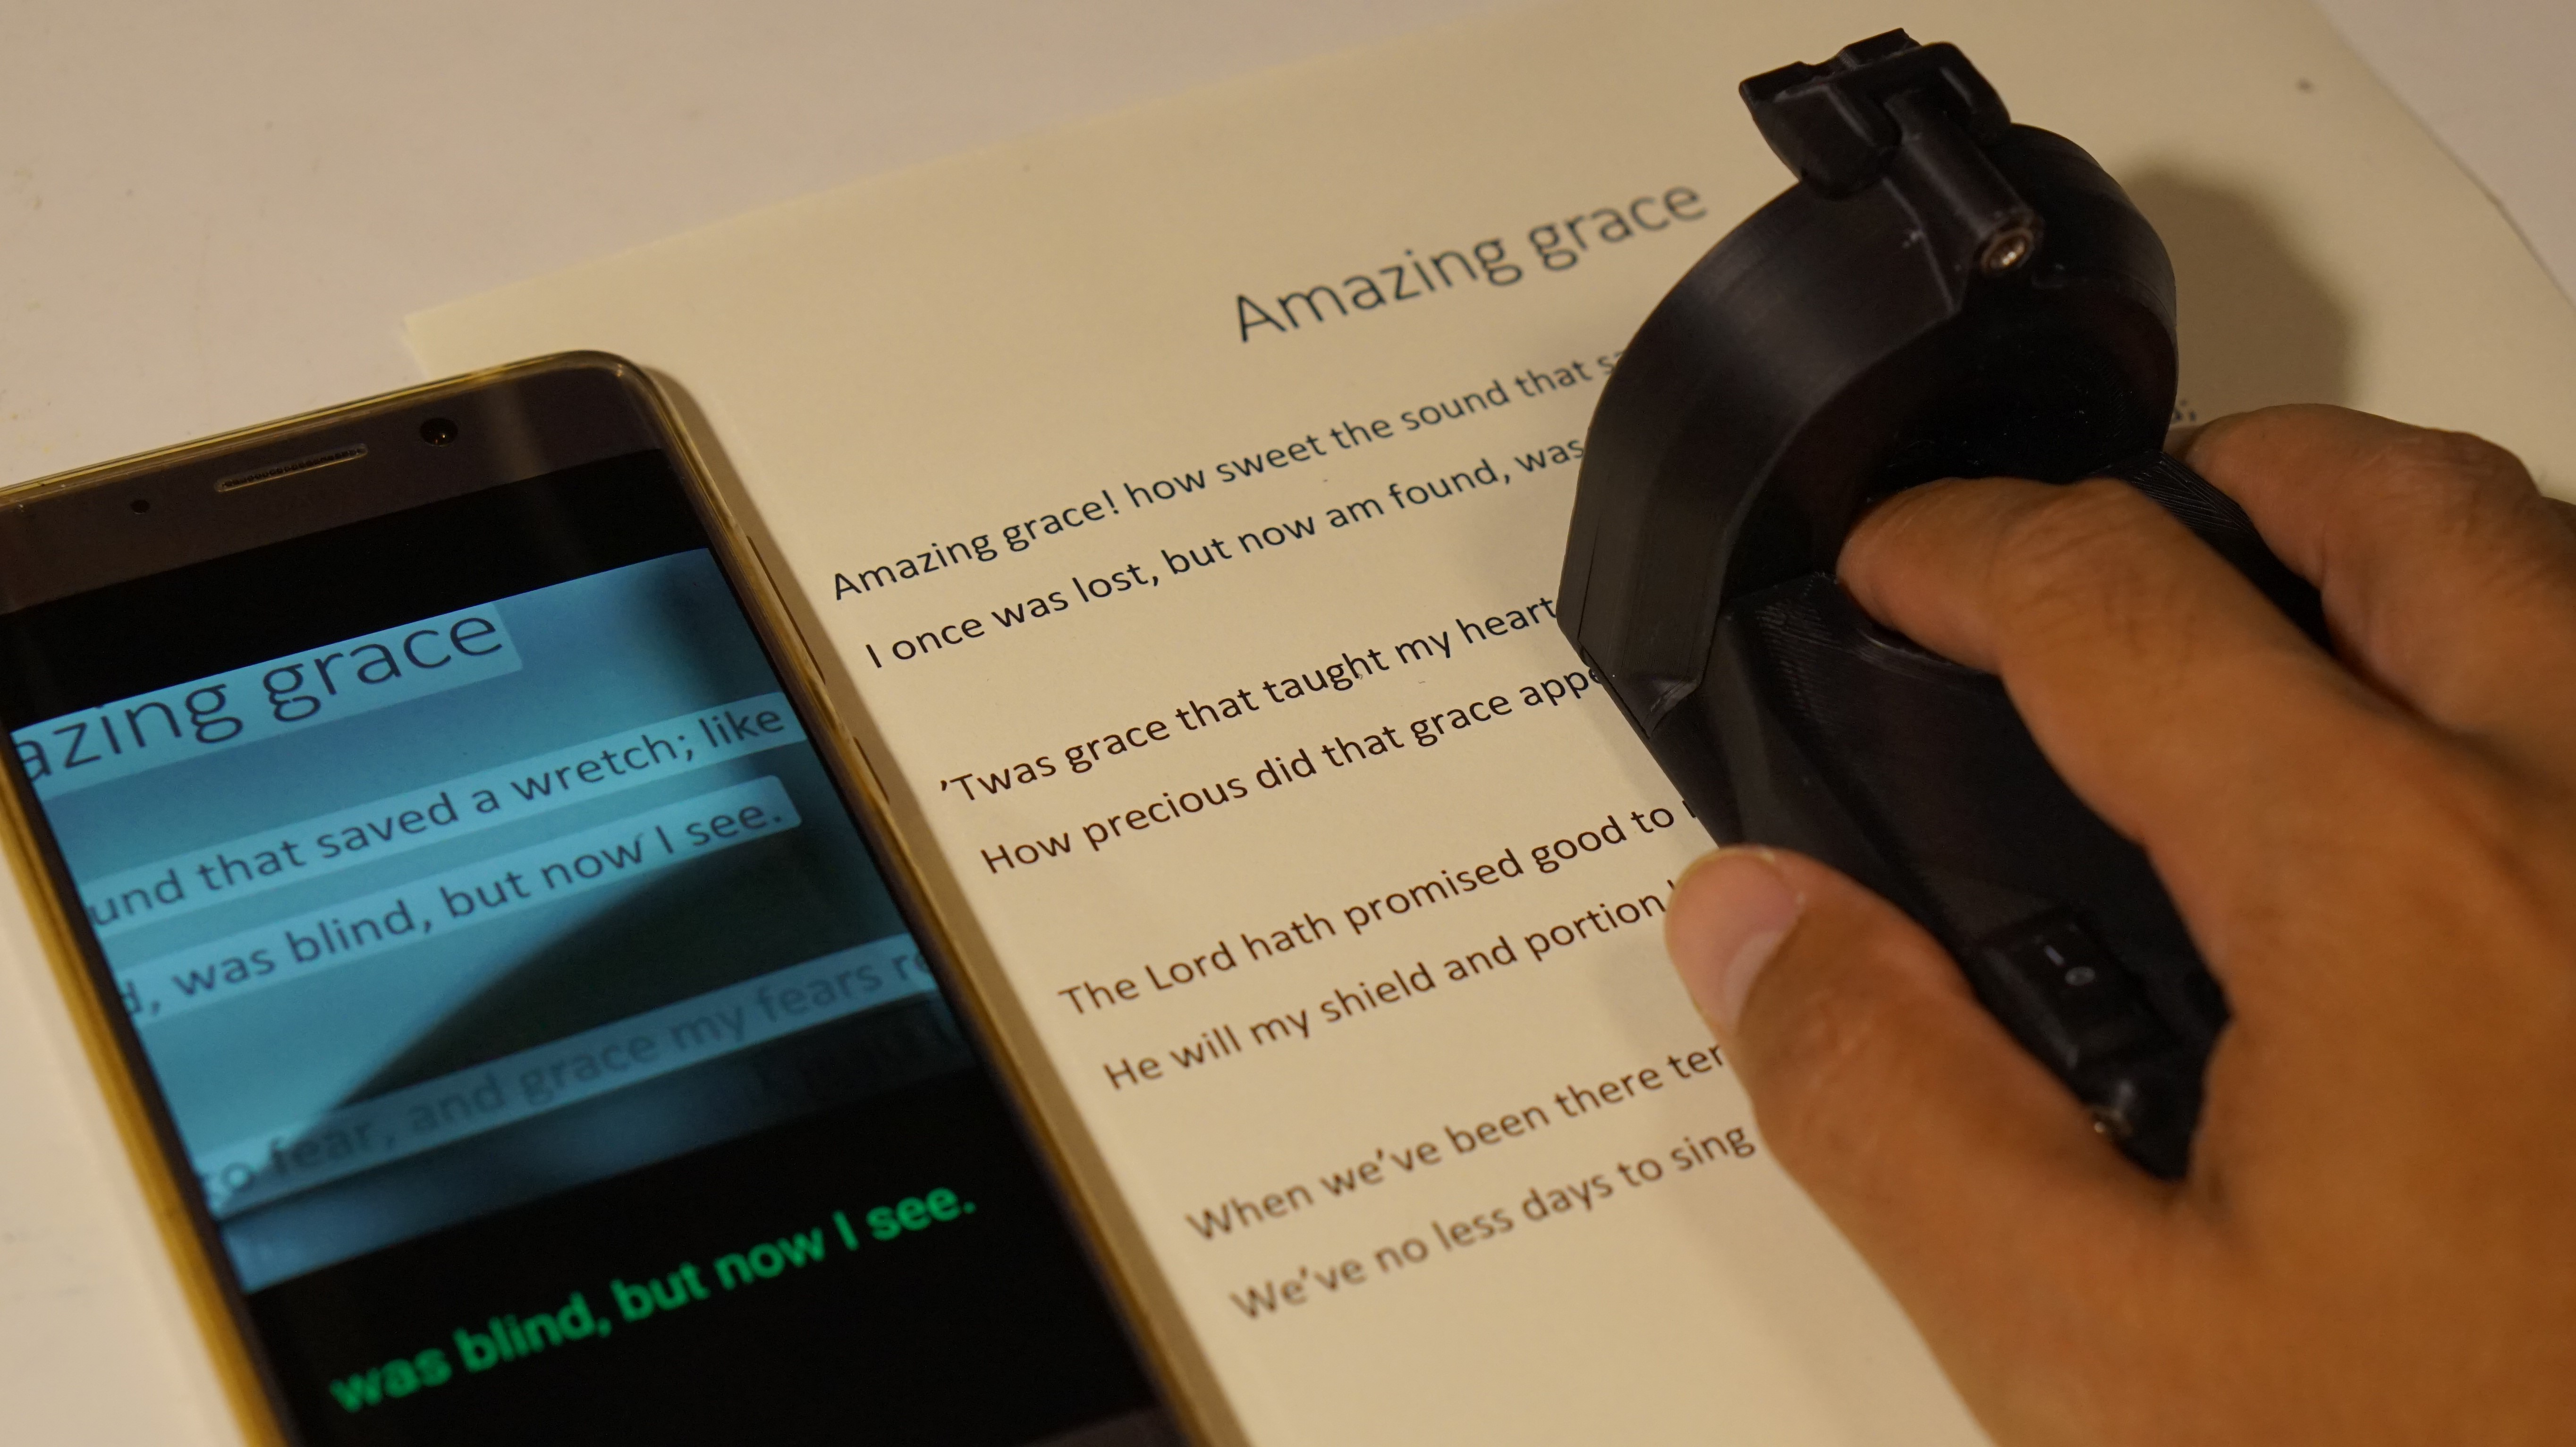 The ReadRing in action.  Its scanning the text of Amazing Grace on paper that's showing up on a smartphone that's triggering the rotary braille display in the ReadRing.